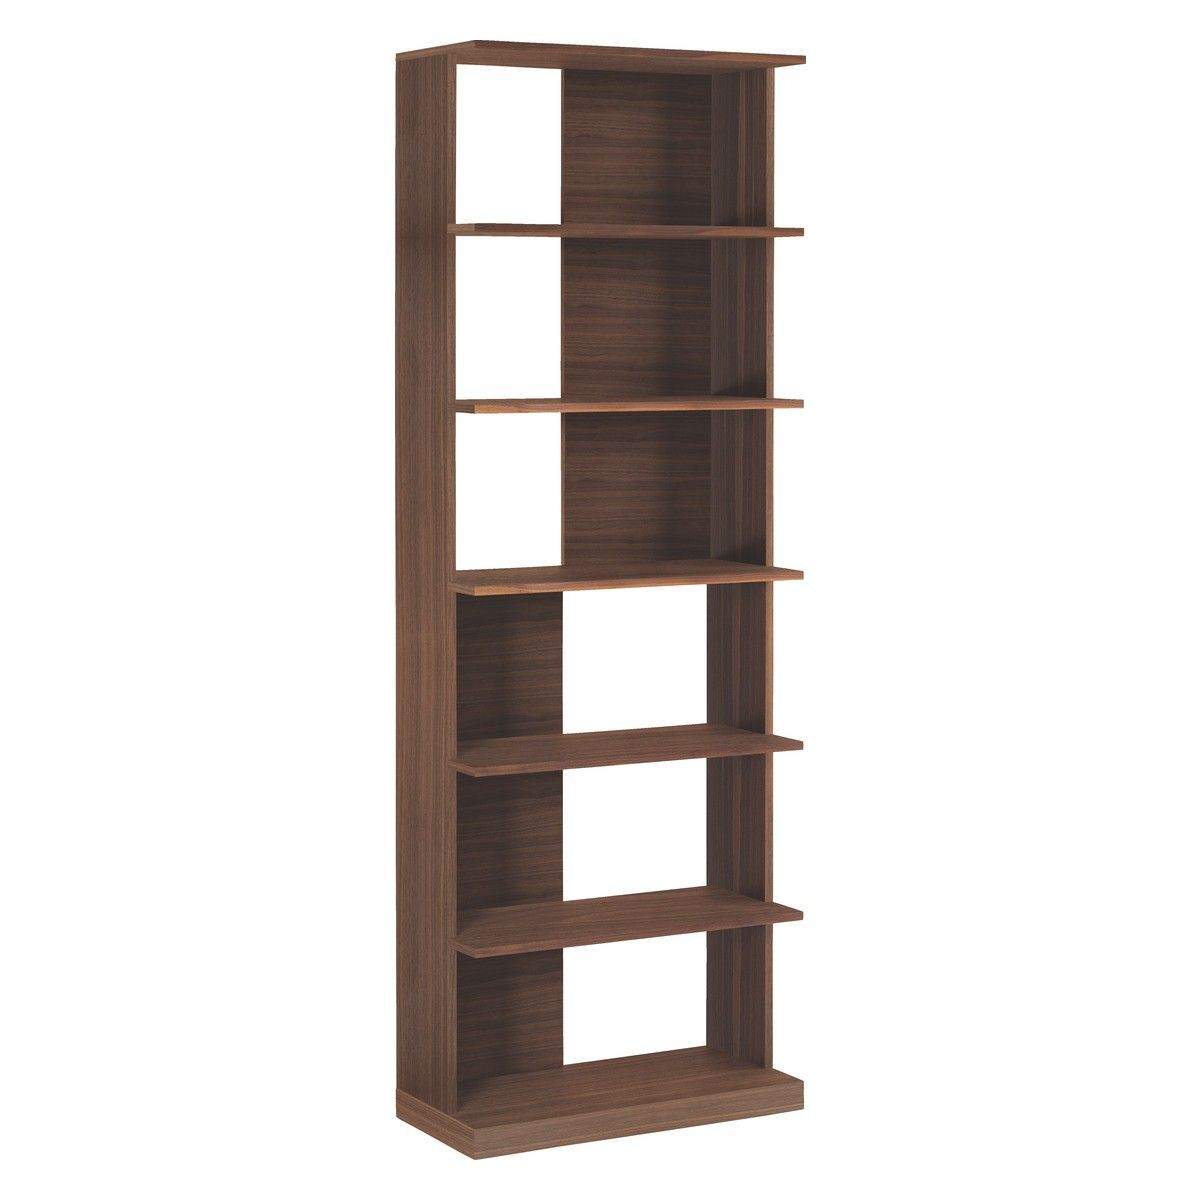 throughout from known bookcase order coffin a hand bookcases made well storages wartooth accent furniture the to buy best